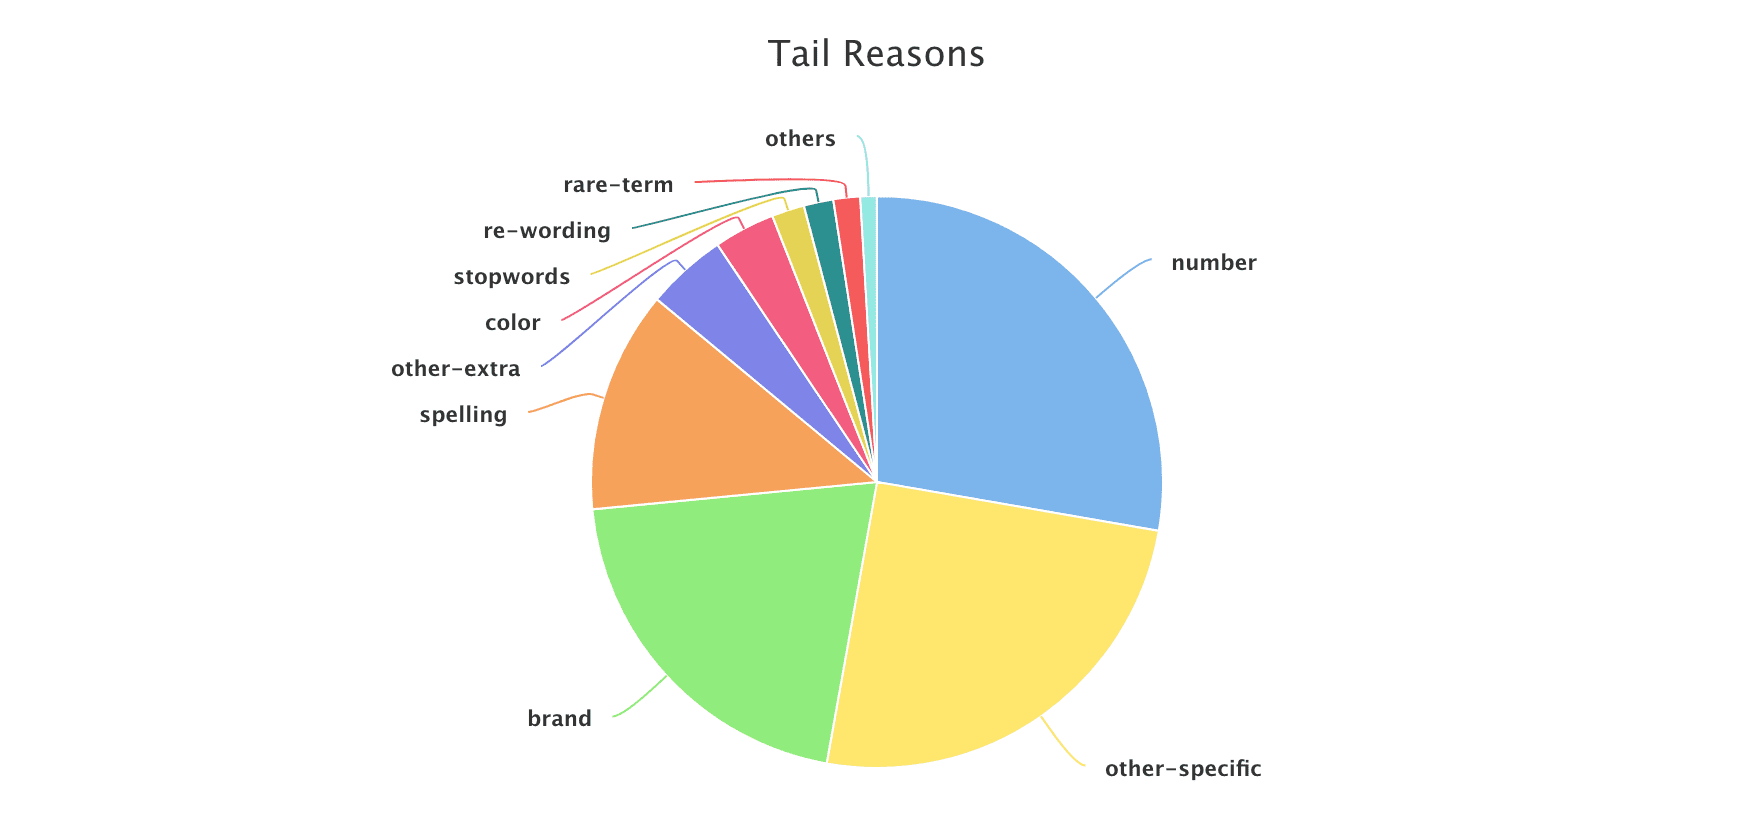 Tail Reasons pie chart